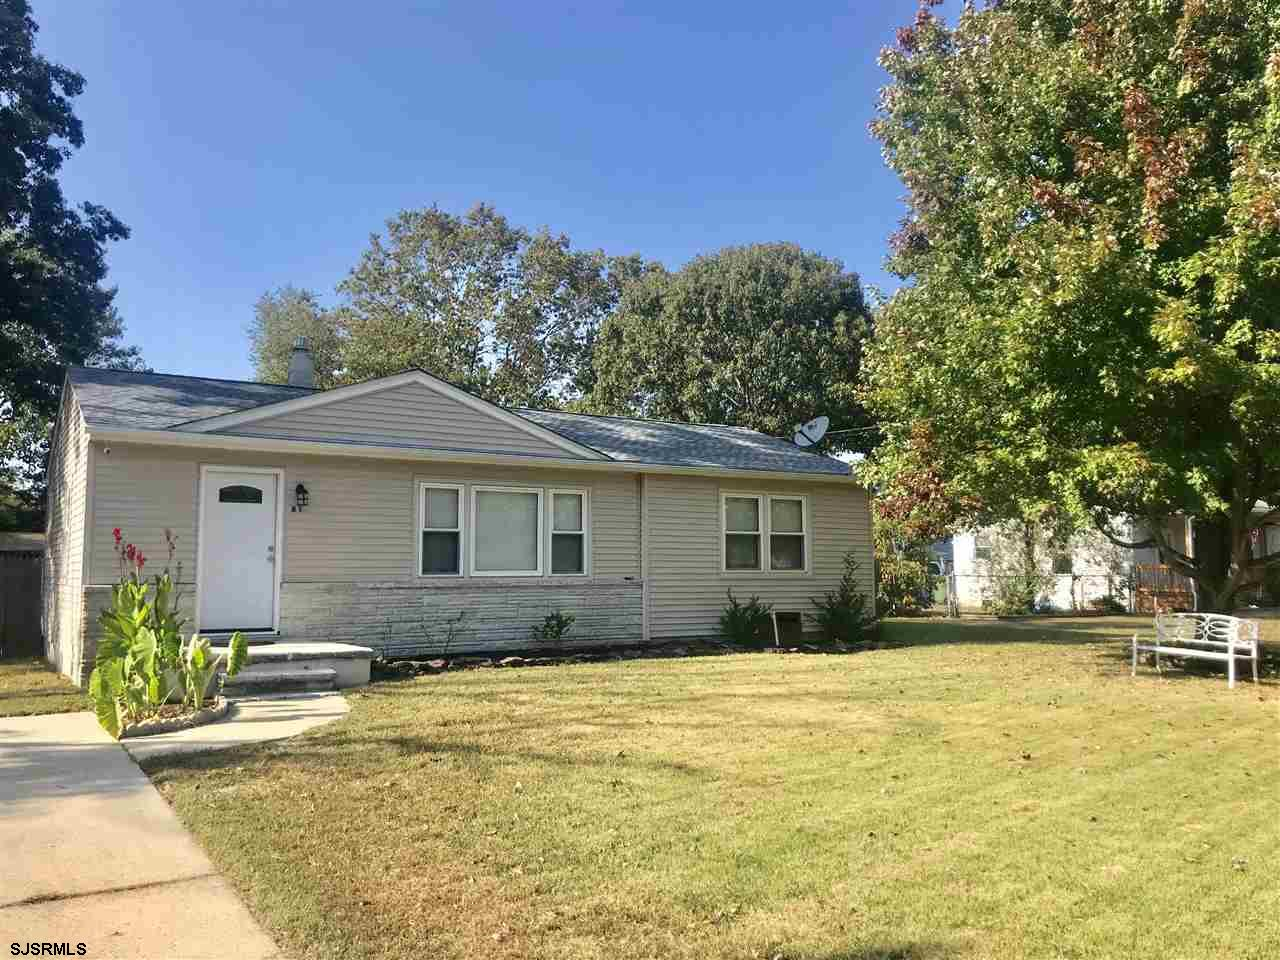 Recently renovated inside and out! Shows meticulously - maintained and clean! New stainless steel kitchen, new flooring, bath, roof, gas heat, central air. Vinyl siding, replaced tilt-in windows. Extra large, deep fenced in yard!!